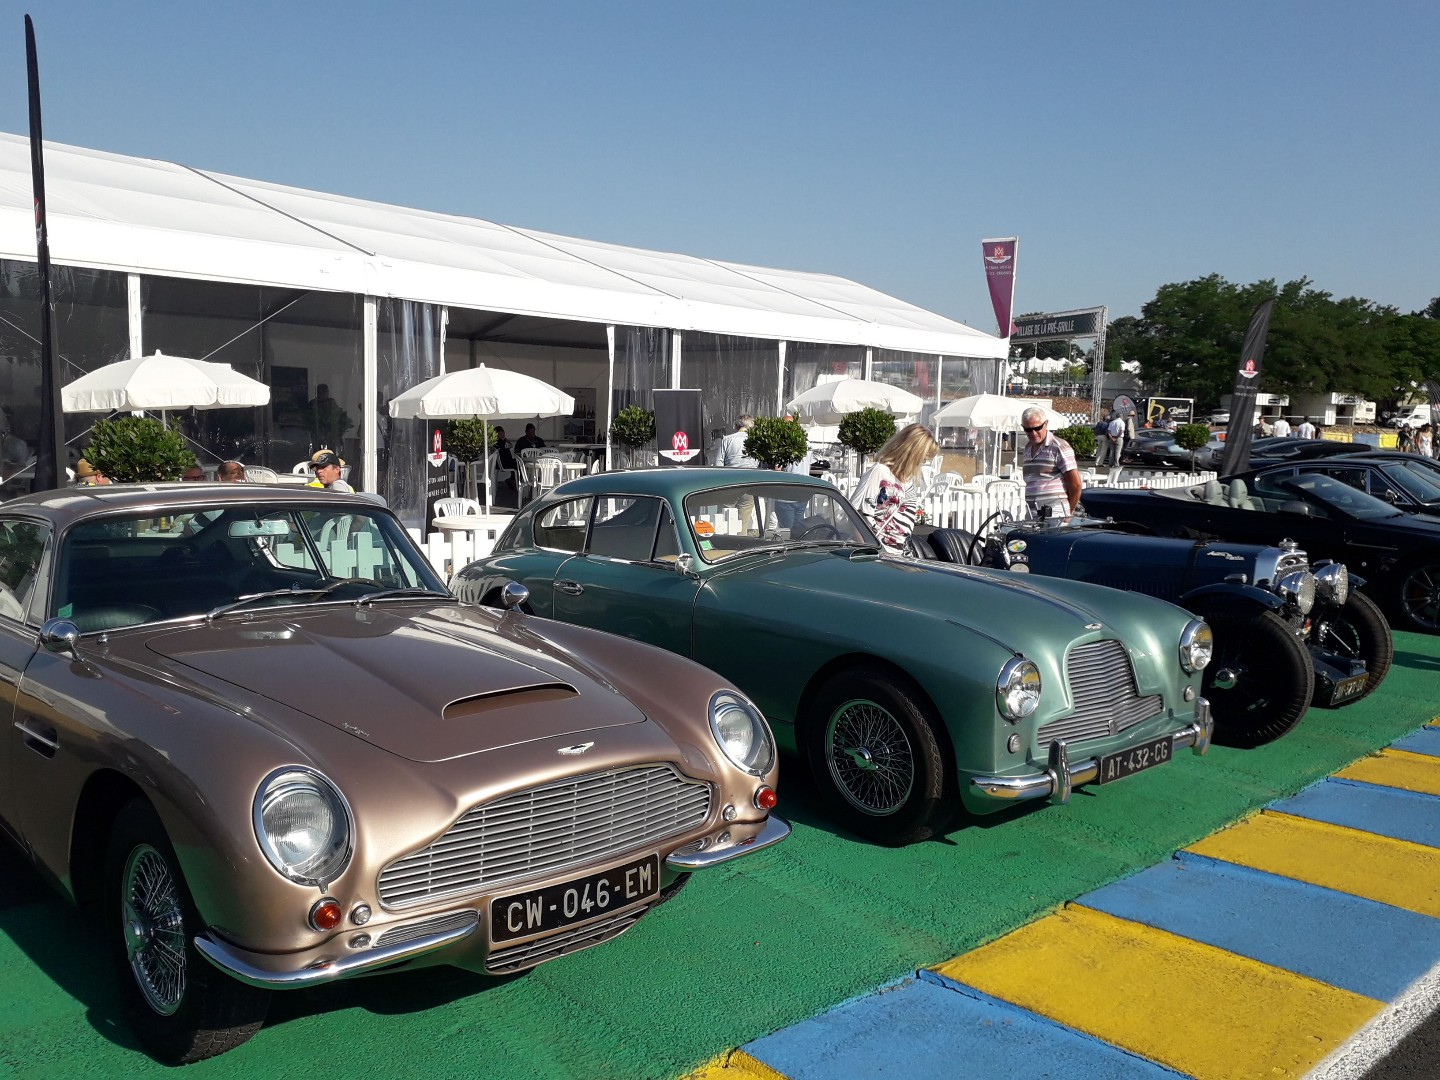 180706_Classic Le Mans_Parking5_AReed.jpg